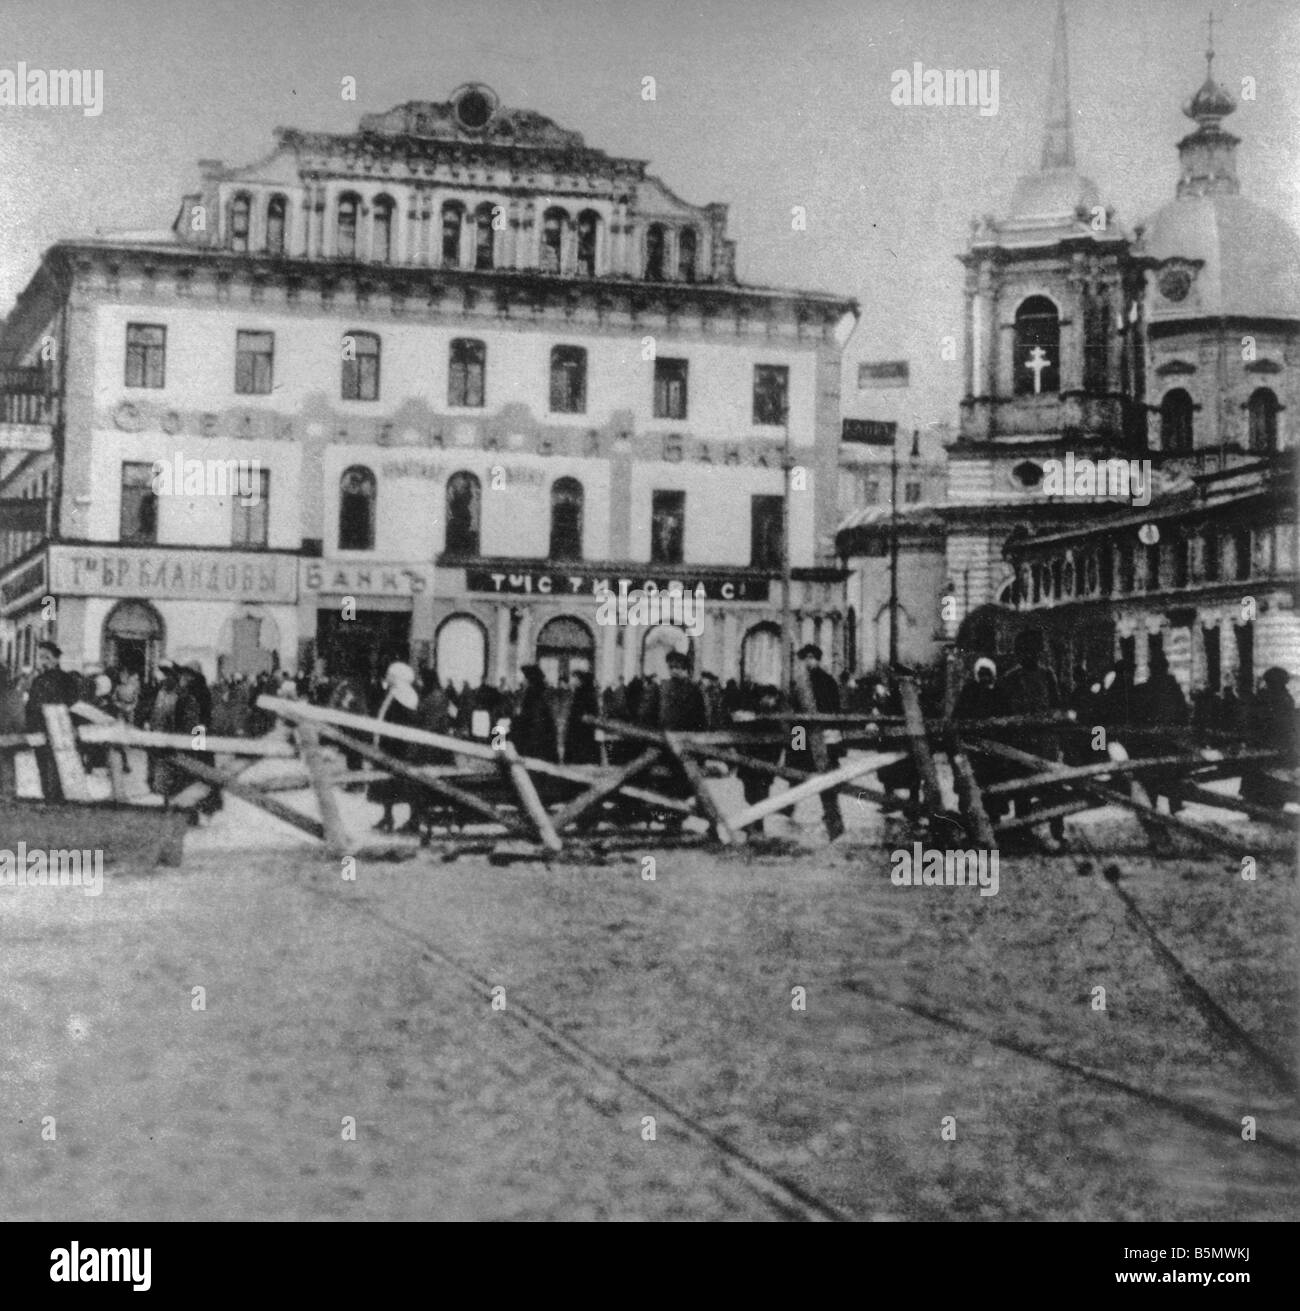 9RD 1917 11 15 A1 October Revolution Arbatskaya Square October Revolution 1917 Red Guards defeating detachments - Stock Image